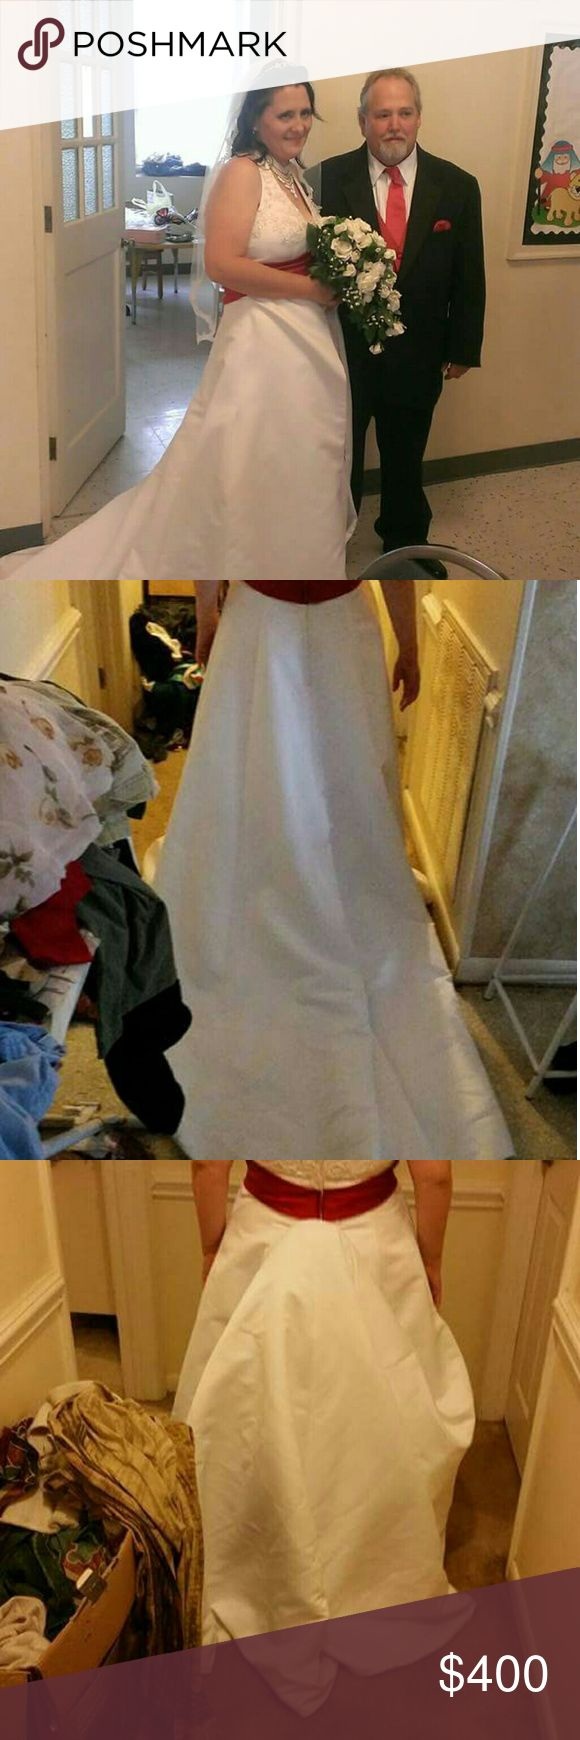 Halter style wedding gown Original size 14 wedding gown in mint condition has pearl sequins from top to bottom Bussels in the back has long train can be let out to fit call 828 748 3638 forever yours international  Dresses Wedding